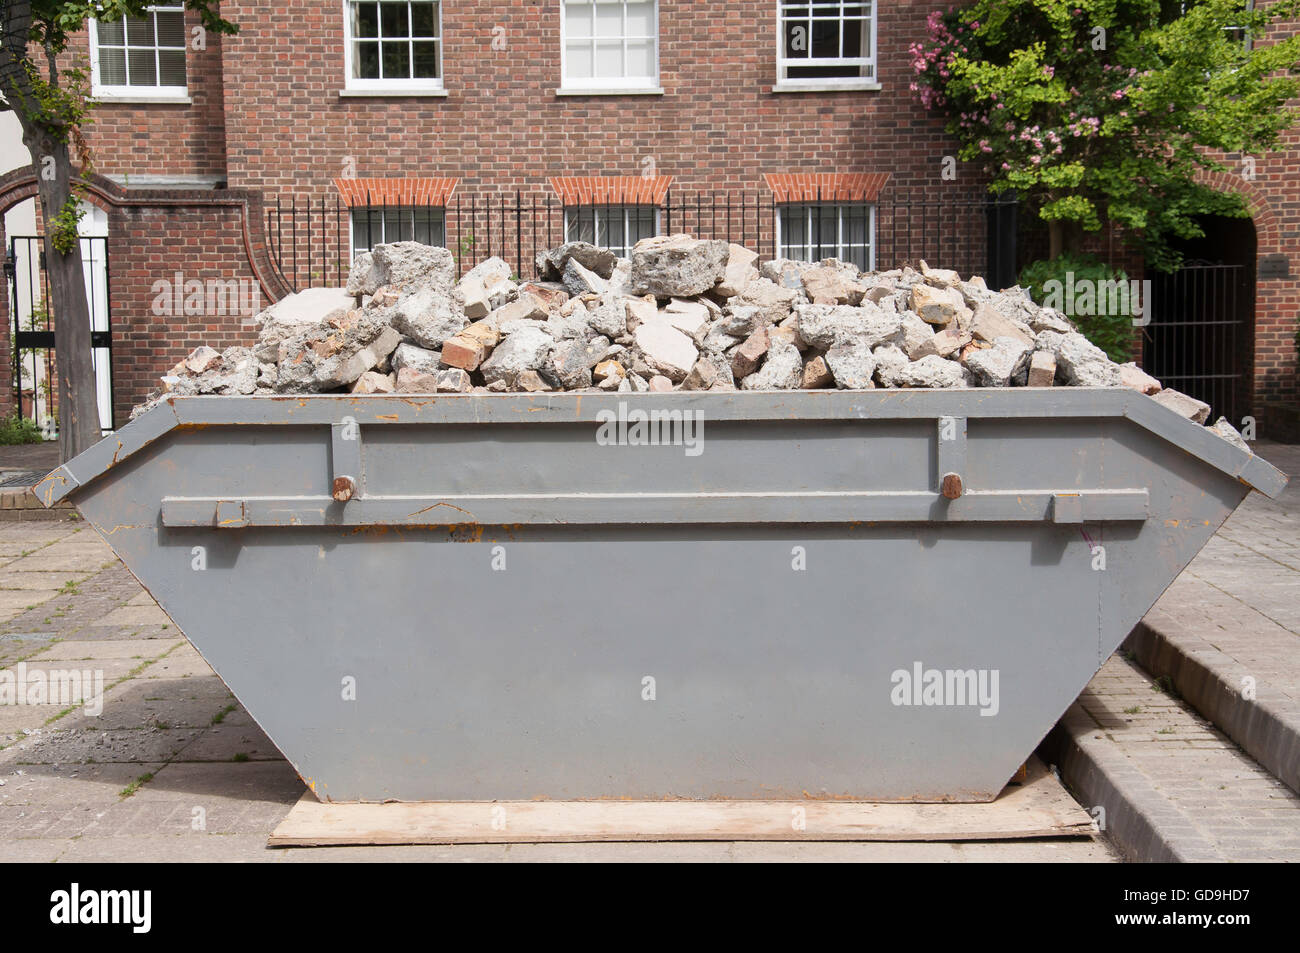 Skip full of aggregate, Lower Square, Isleworth, London Borough of Hounslow, Greater London, England, United Kingdom - Stock Image